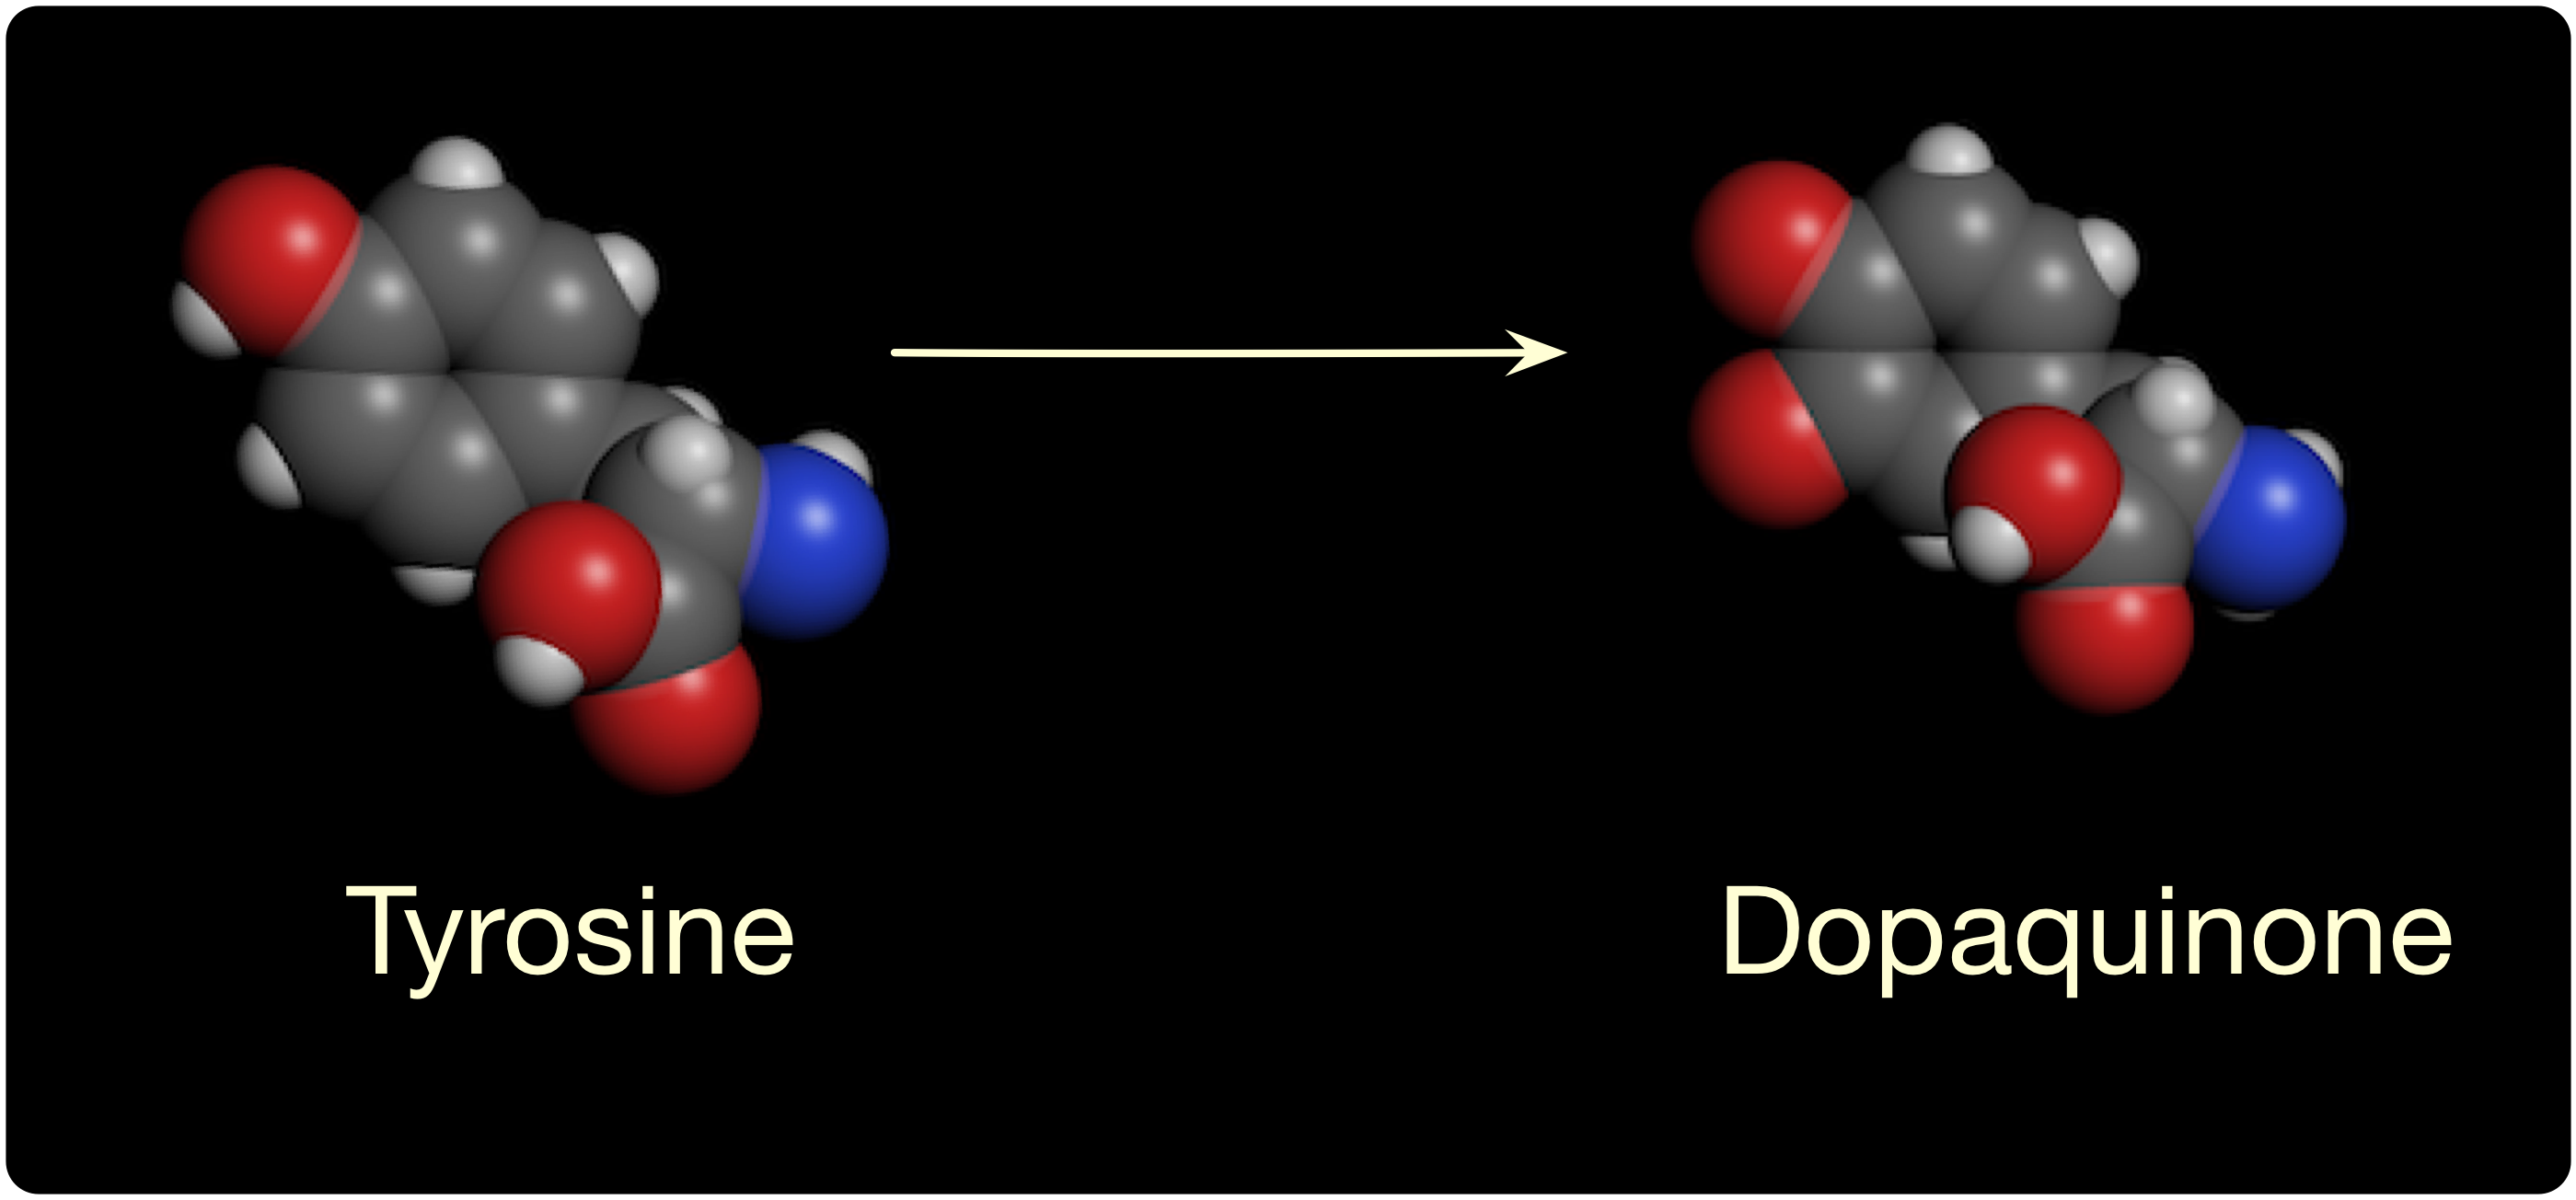 Tyrosine and dopaquinone